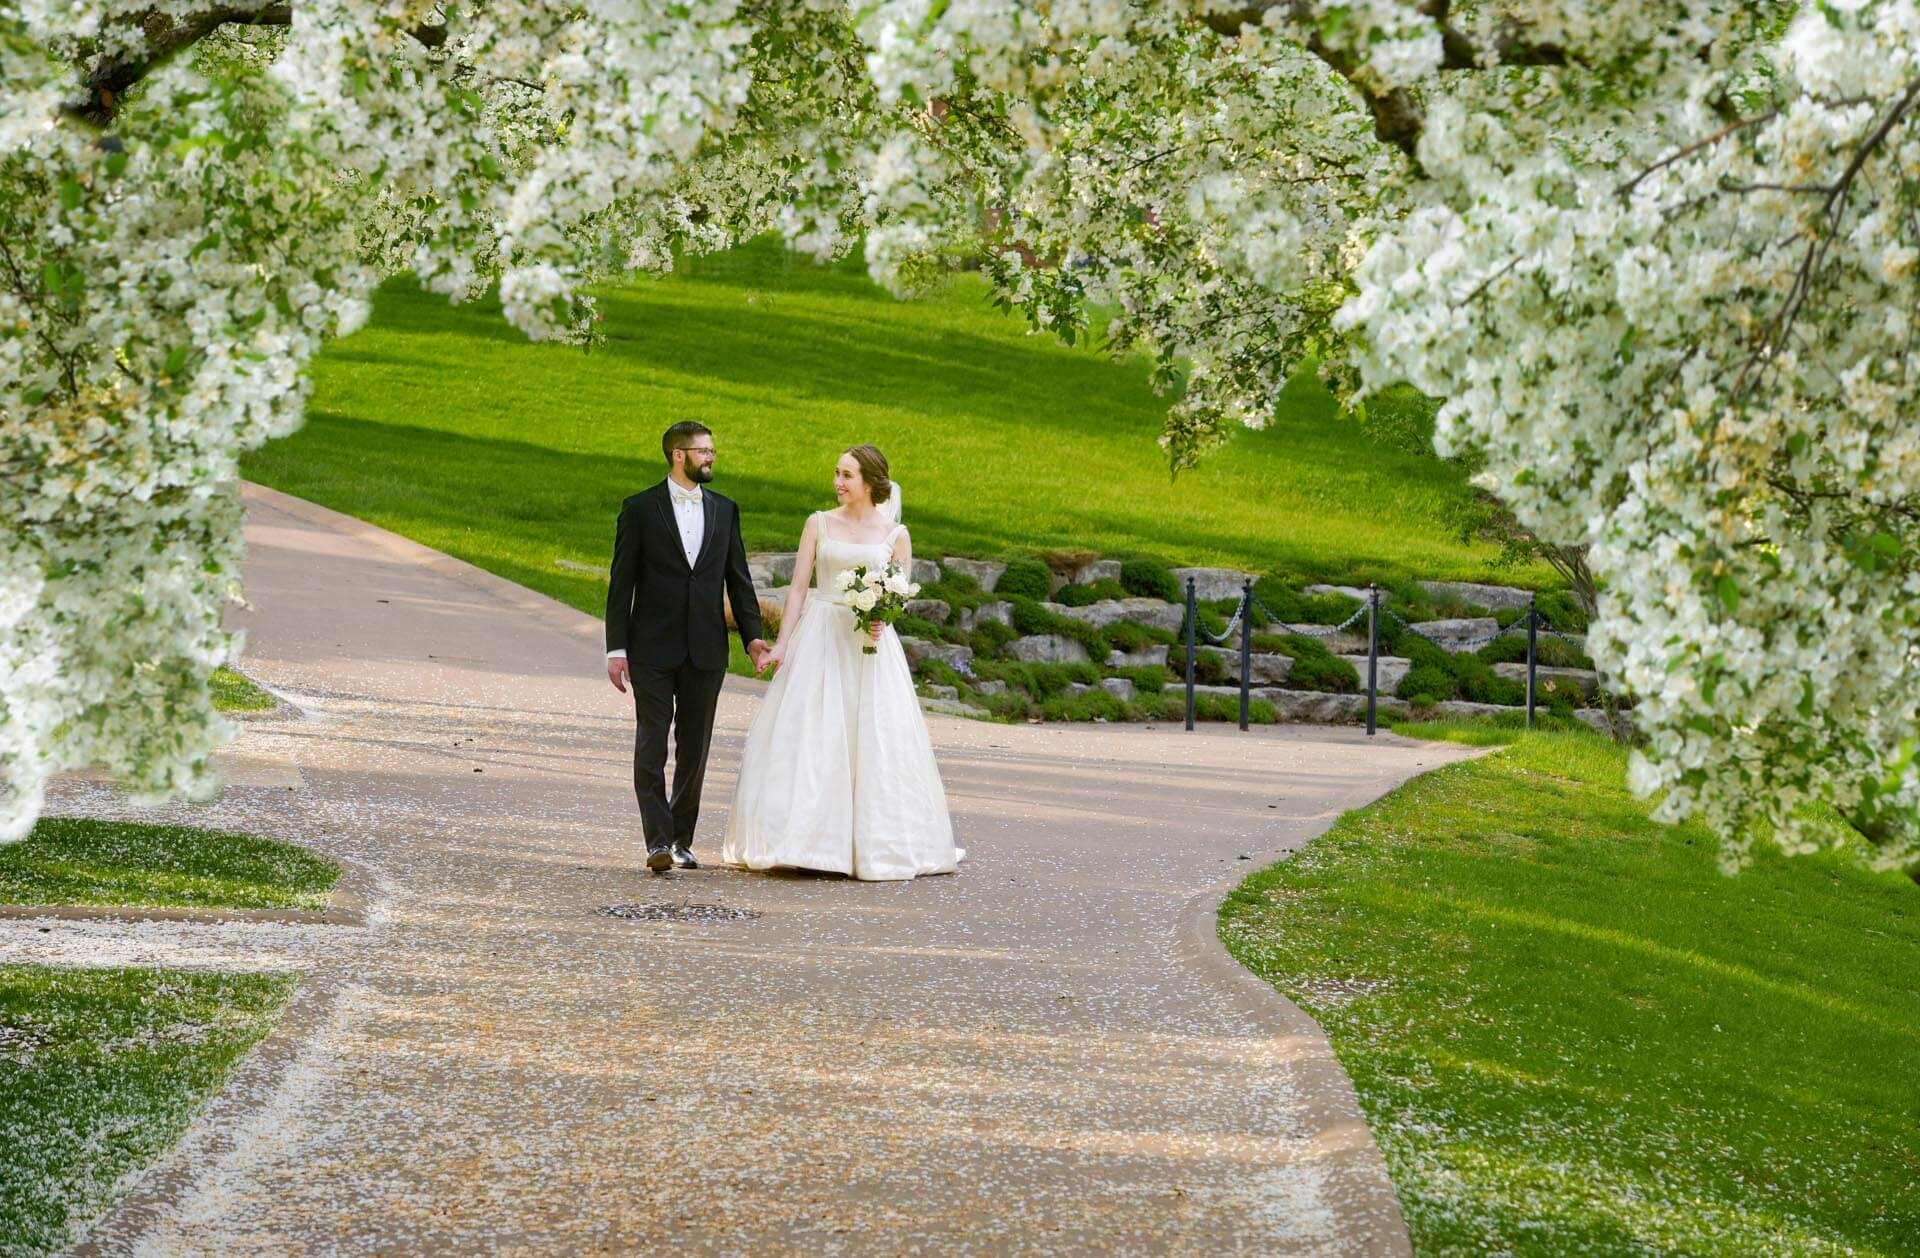 Epic Wedding portrait showing the bride walking through the Greenfield Village in Spring with her husband after their wedding in Dearborn, Michigan.